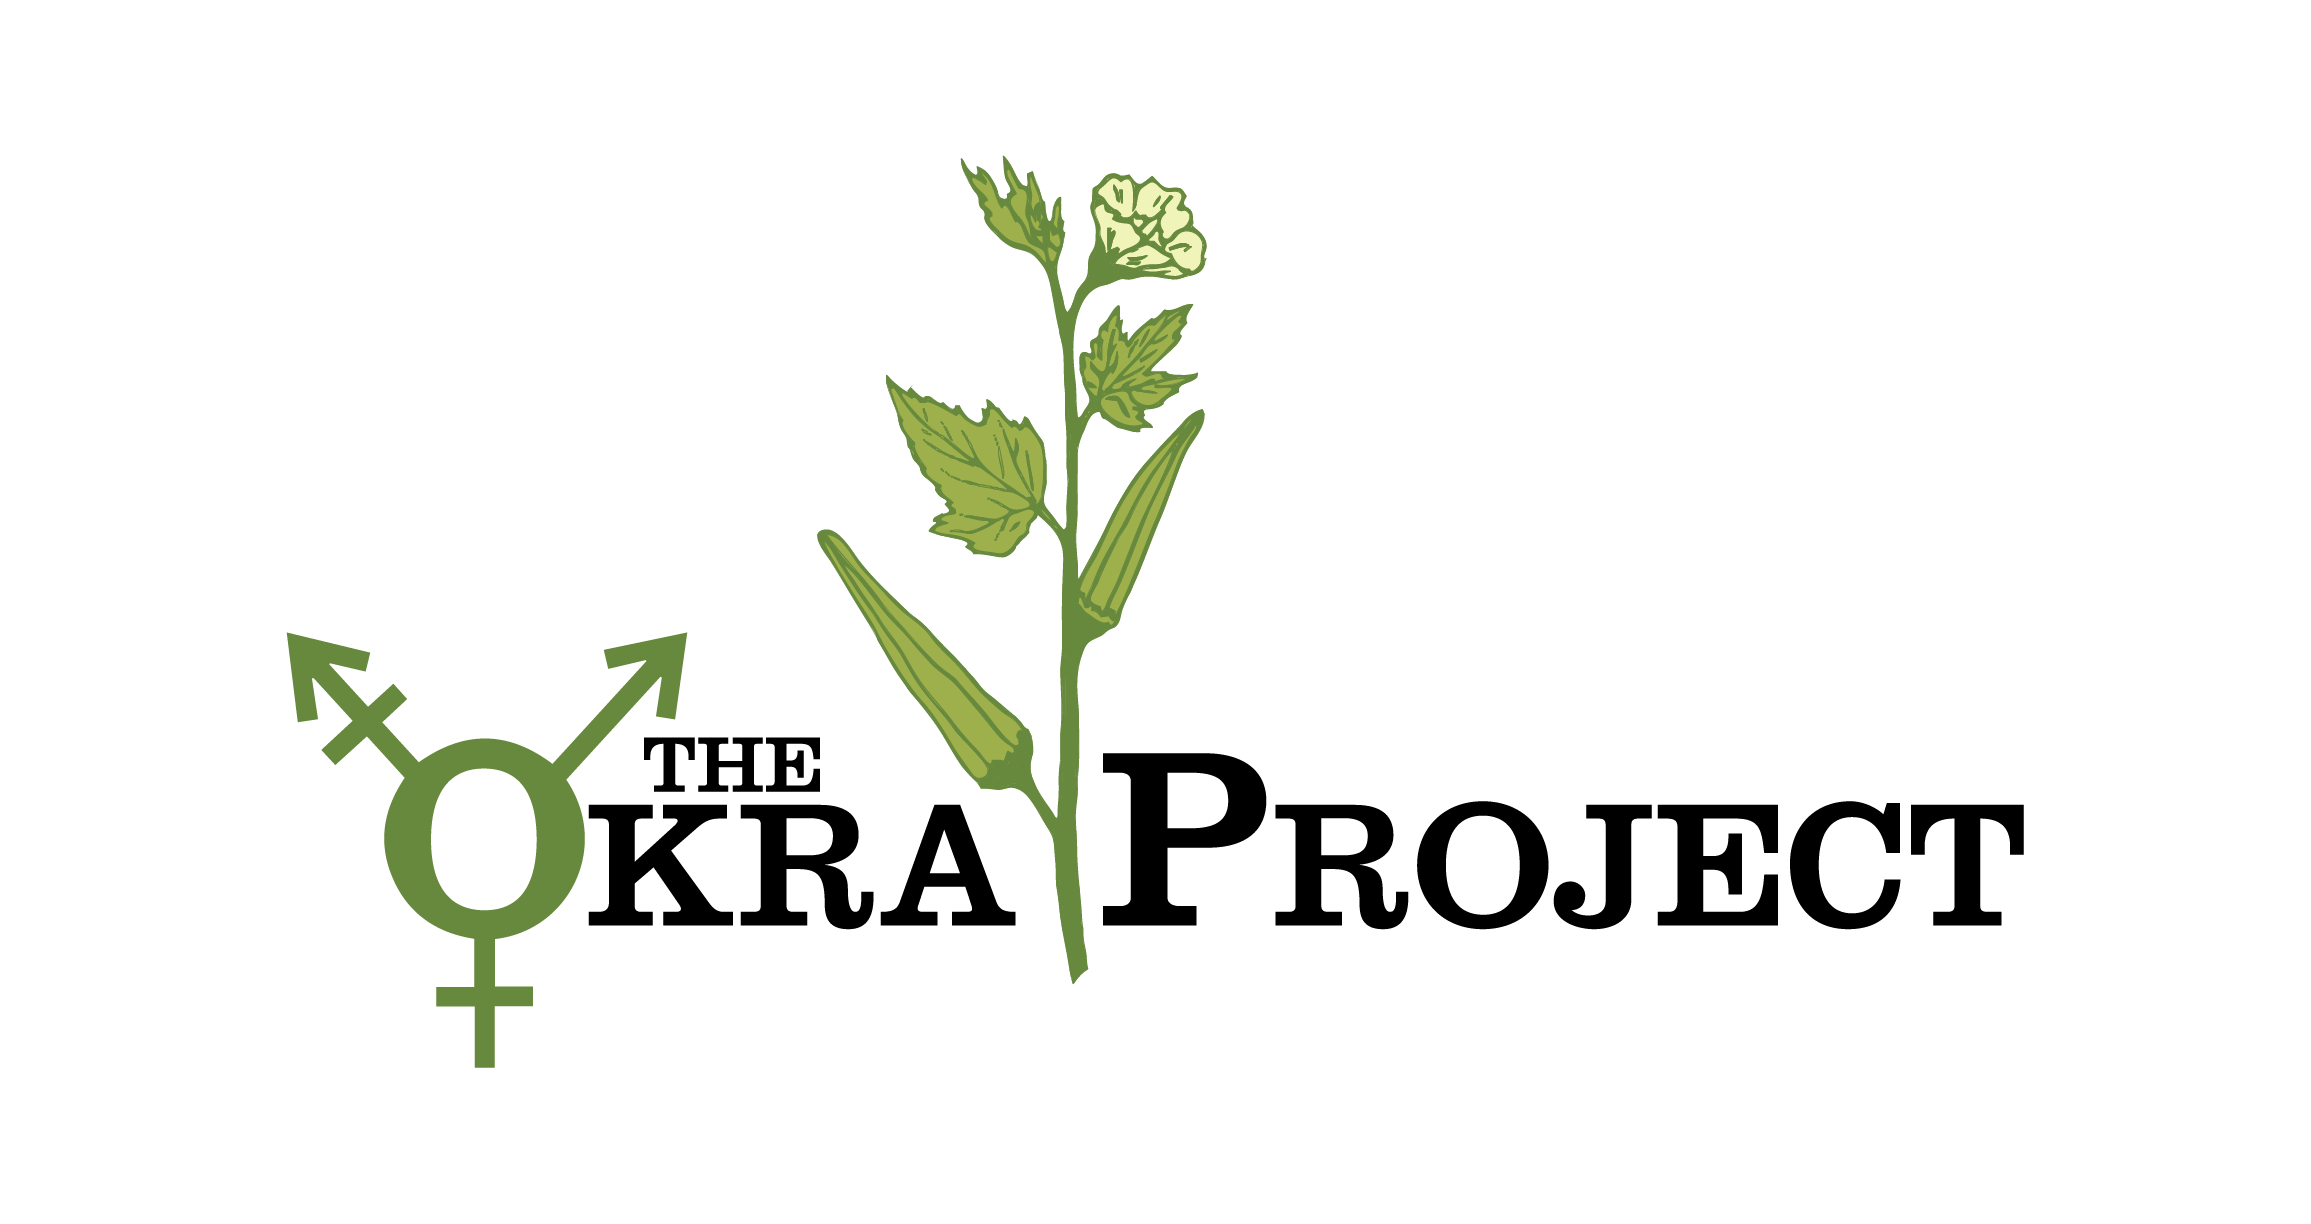 IANNE IS THE FOUNDER OF THE OKRA PROJECT. THE ORGANIZATION HIRES BLACK TRANS CHEFS TO COOK FOR BLACK TRANS PEOPLE.   CLICK THE PICTURE FOR MORE INFORMATION!